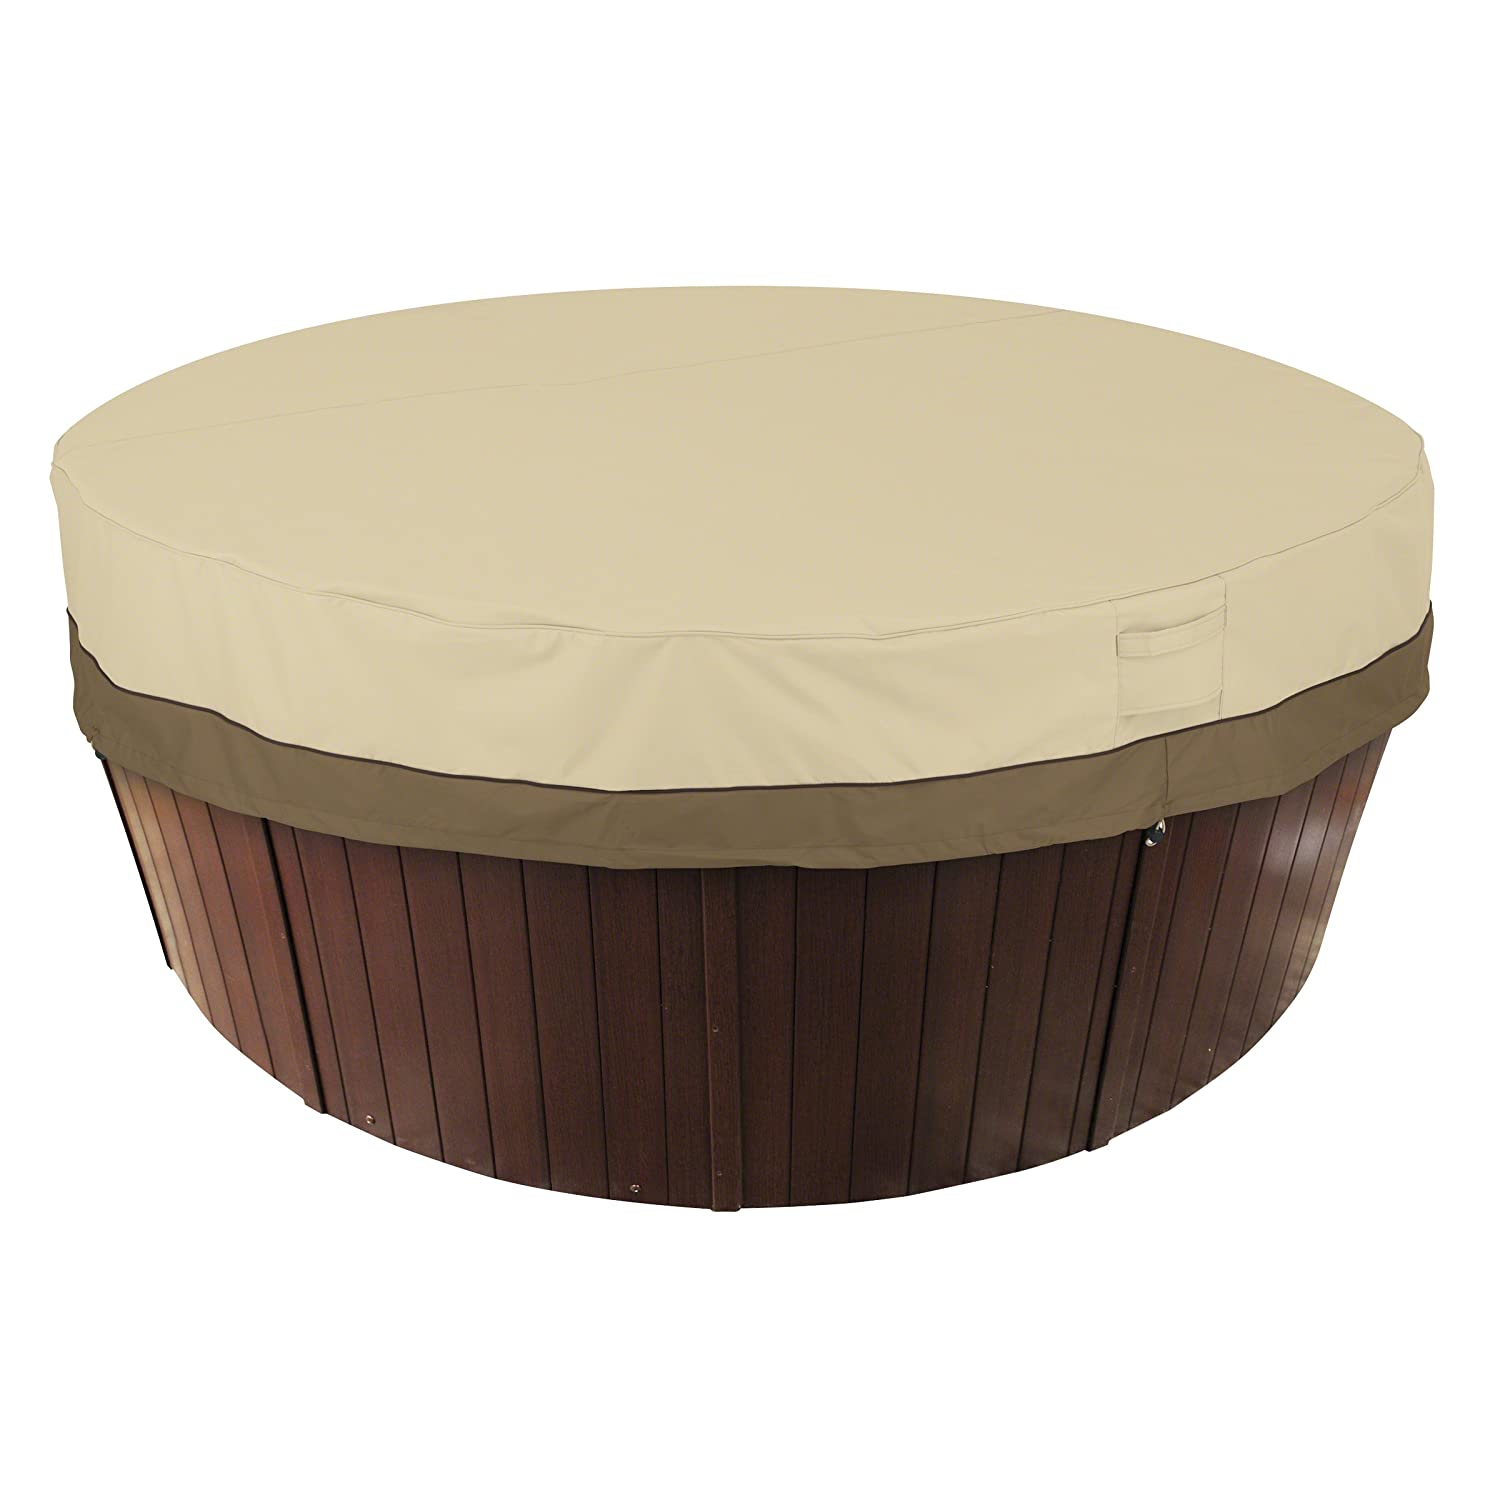 Classic Accessories Veranda Round Hot Tub Cover